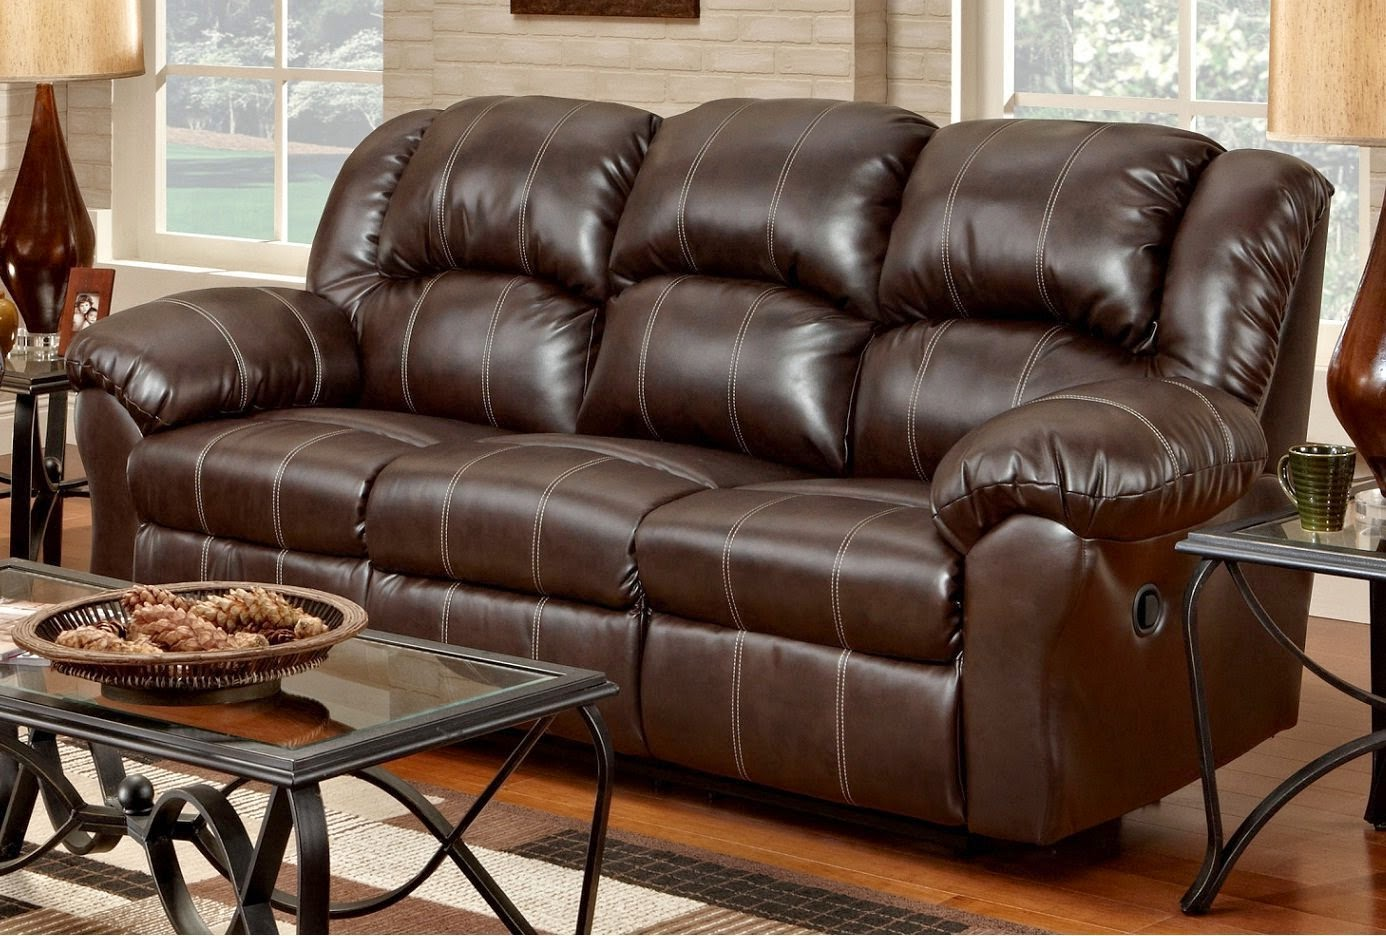 Roundhill Brown Alpha Leather Dual Reclining Sofa : best leather recliners - islam-shia.org